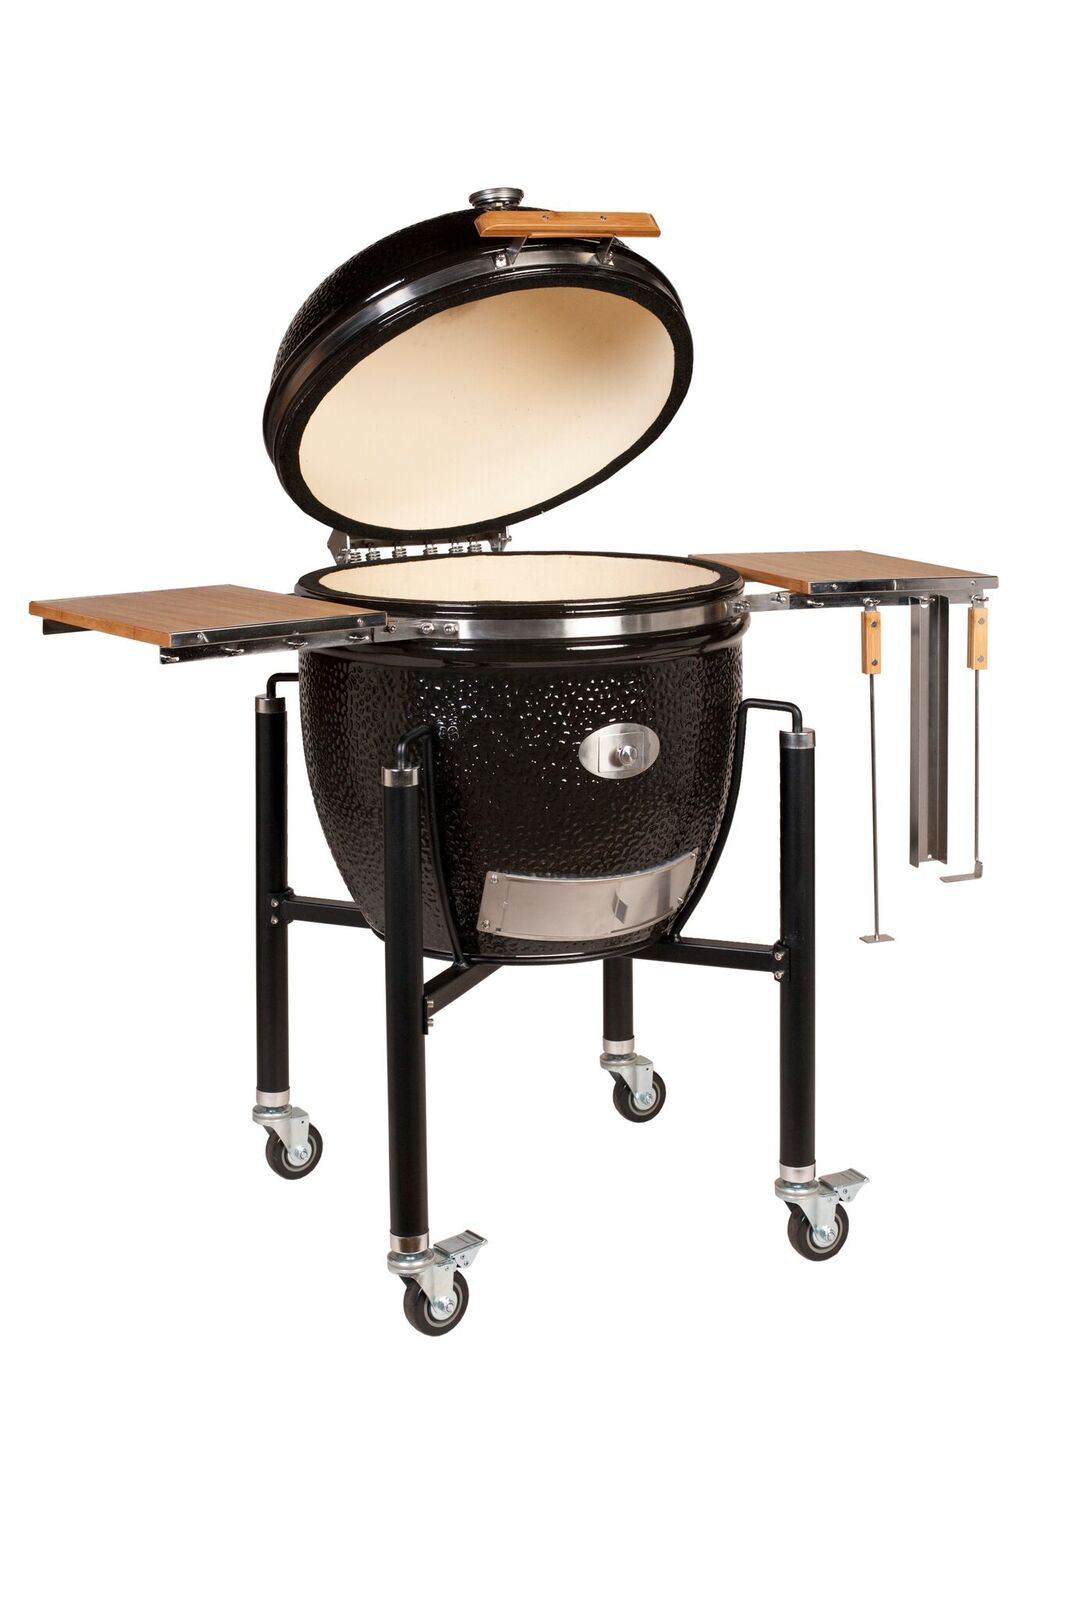 Buy the best kamado at the lowest price today.